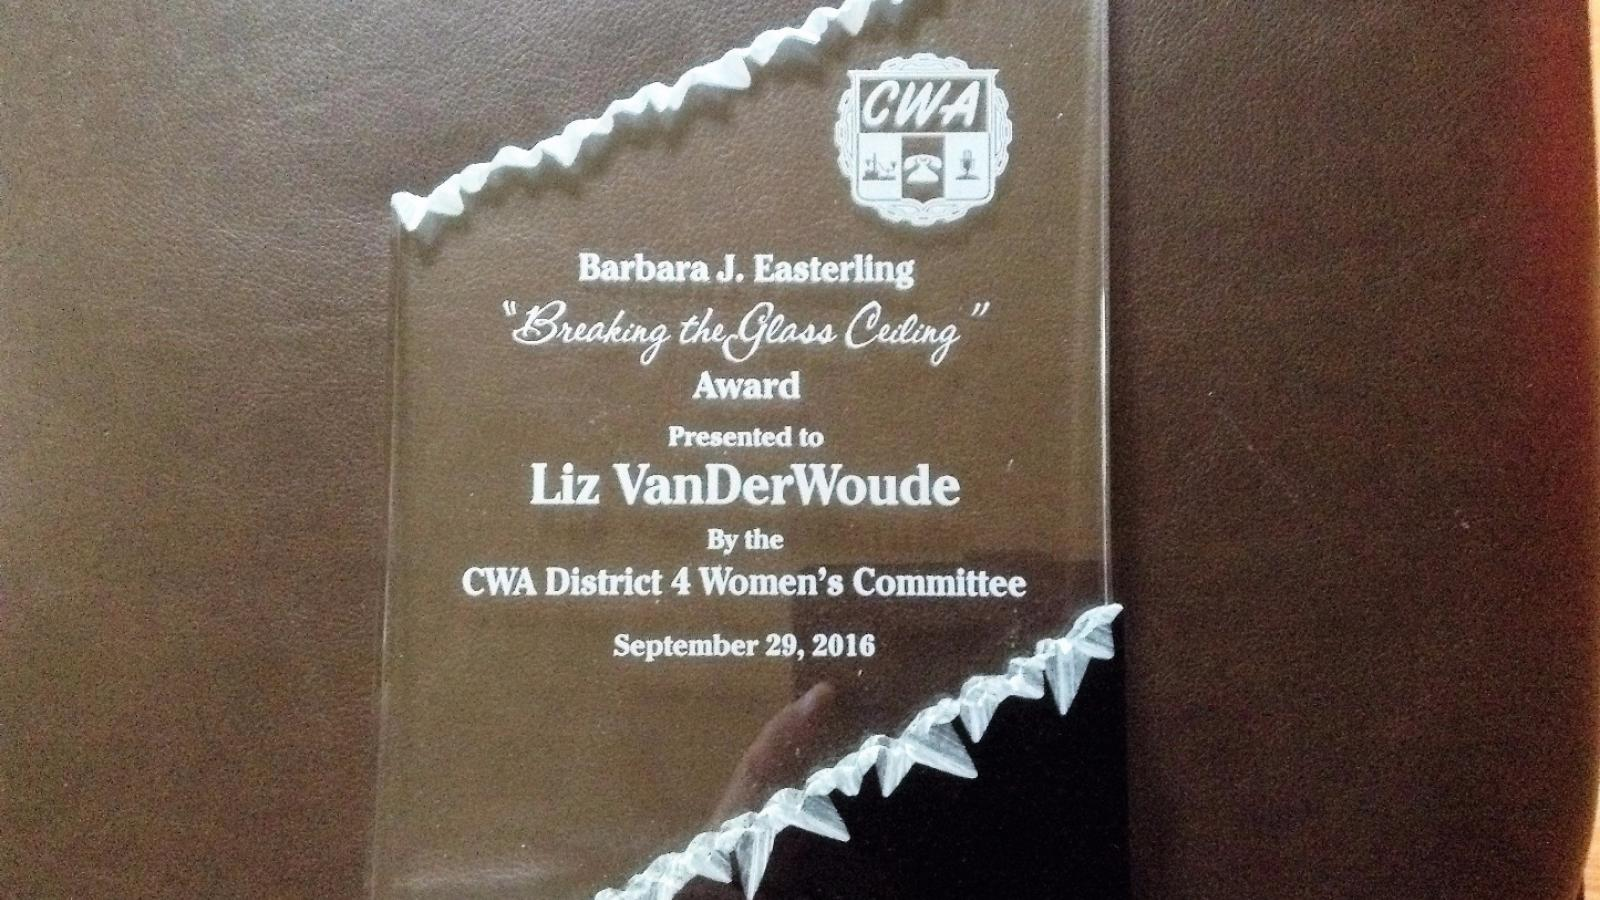 Image in support of: CWA Local 4250/CTU #16 President Liz VanDerWoude, Received The CWA District 4 Barbara J Easterling, Breaking The Glass Ceiling Award on September 29, 2016, Detroit, Michigan.